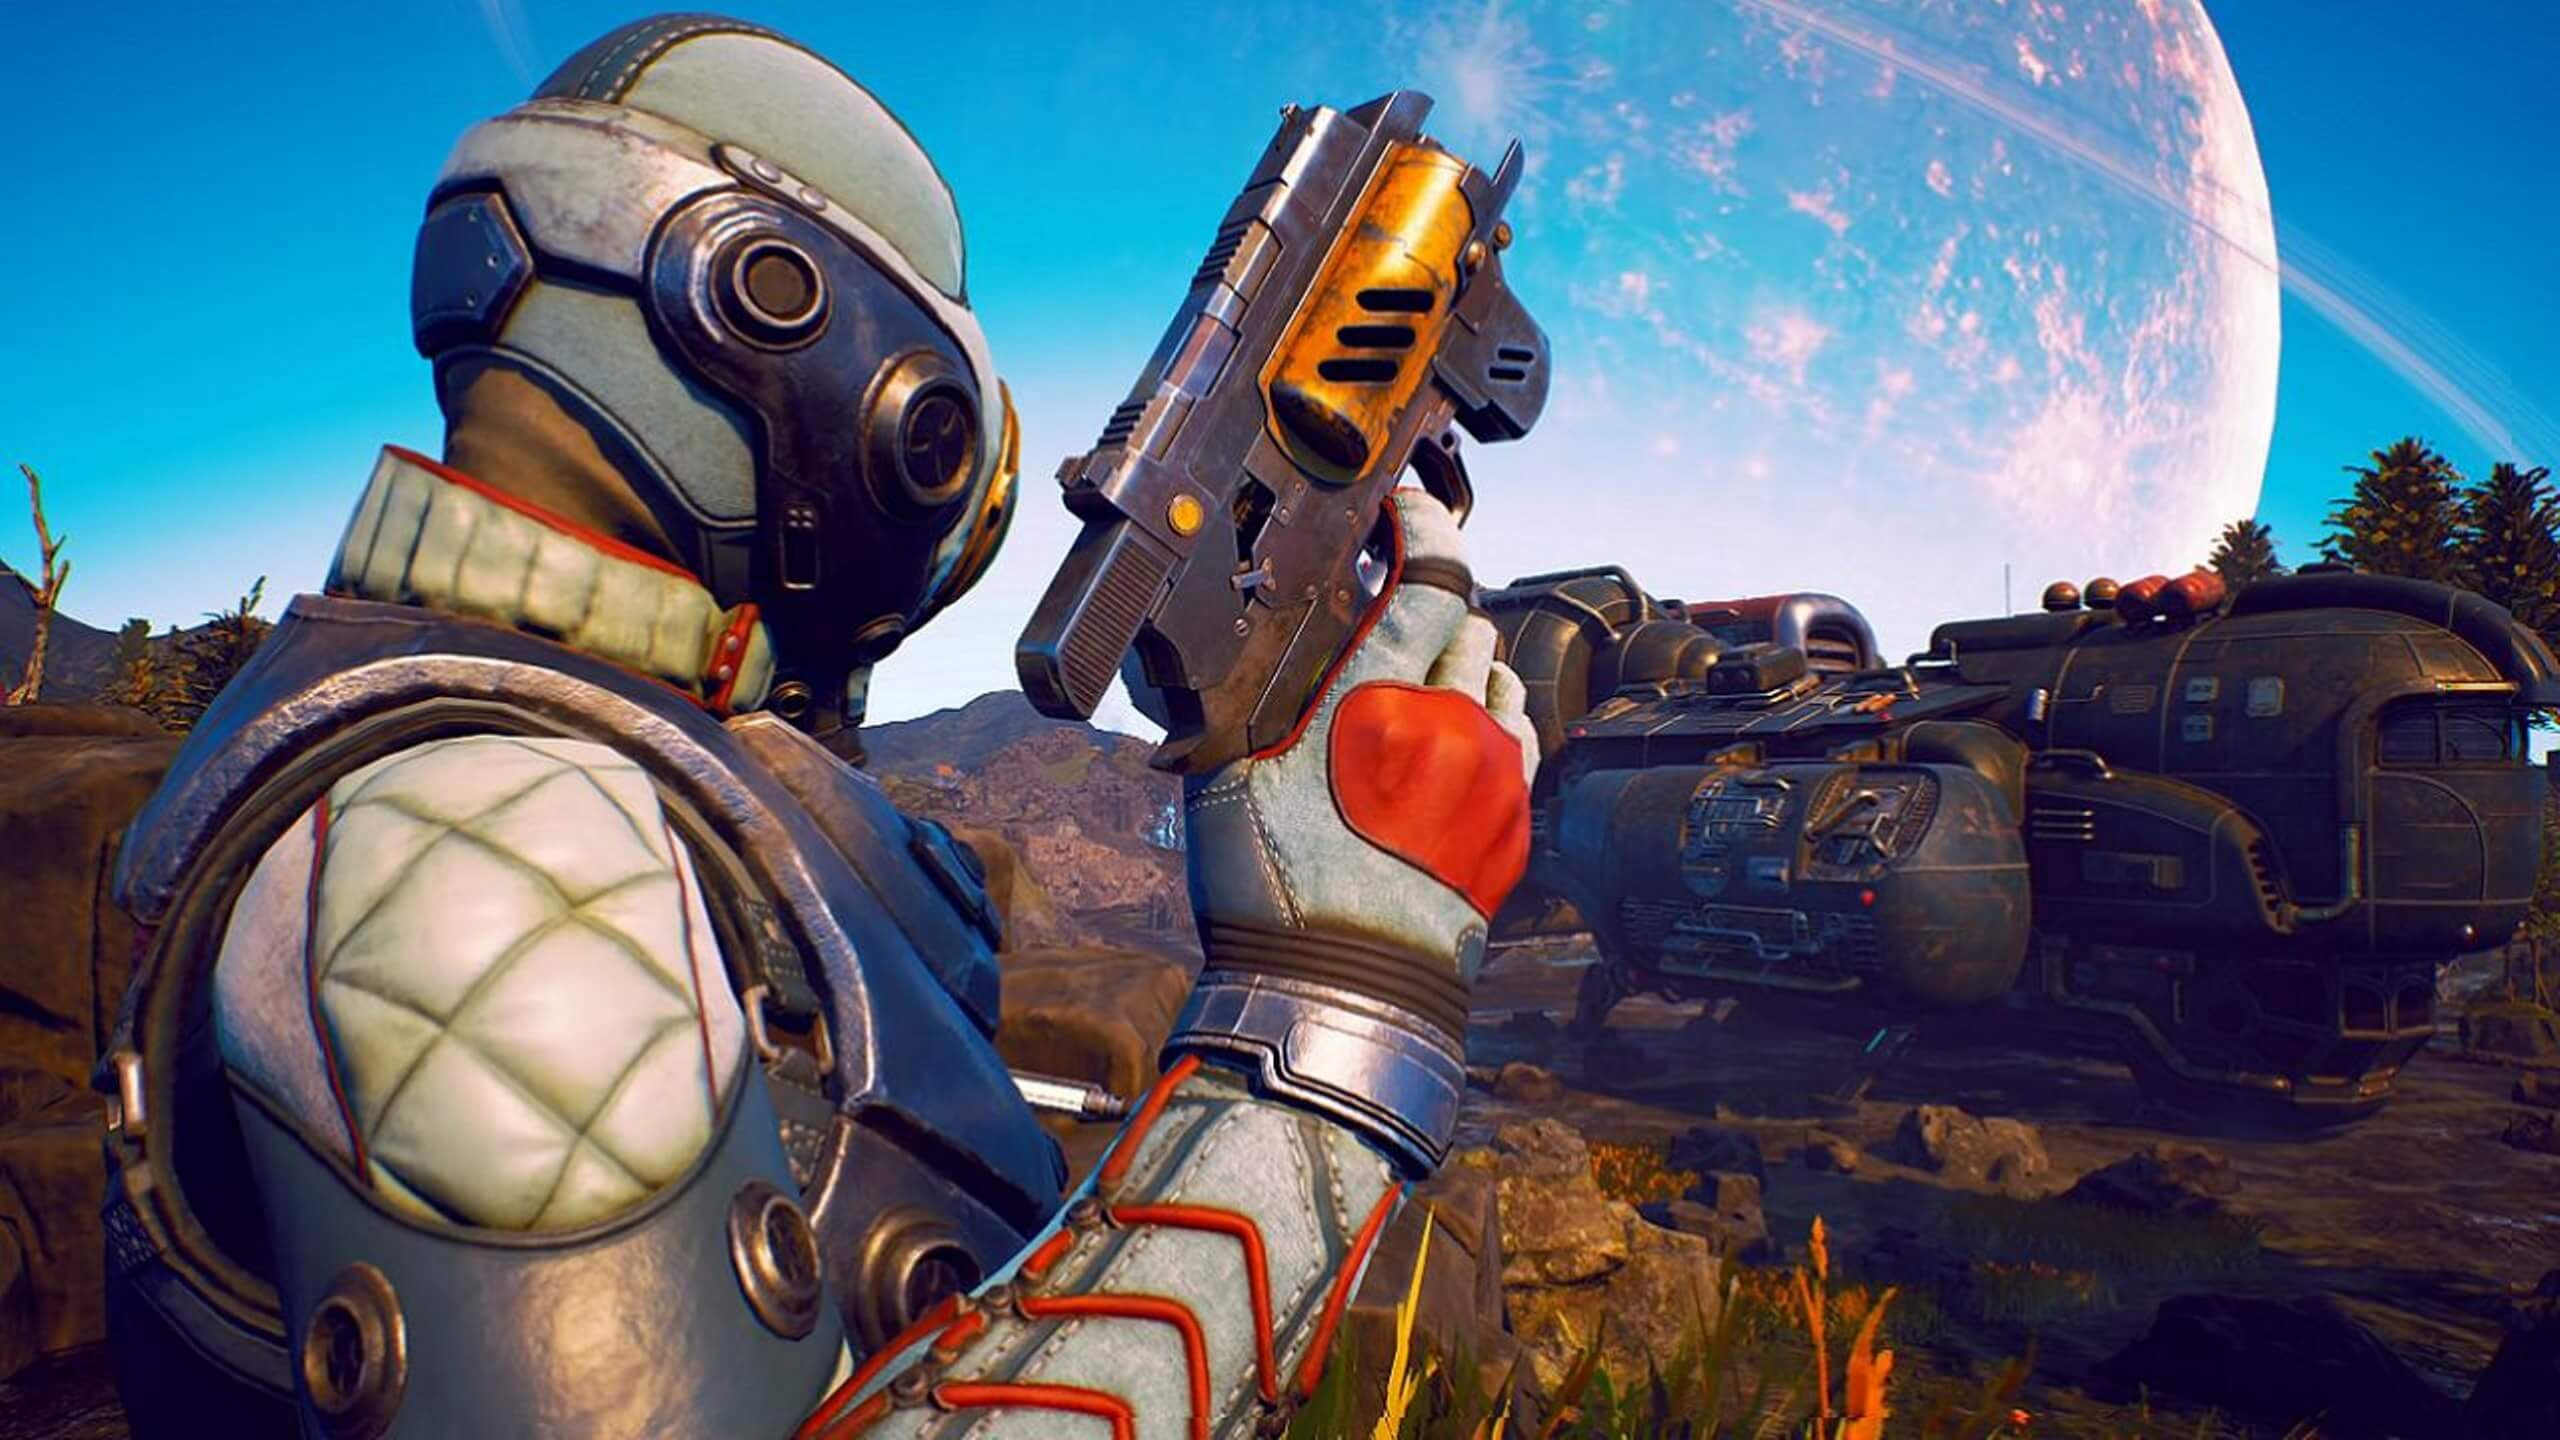 Obsidian's Nintendo Switch port of The Outer Worlds lands March 6